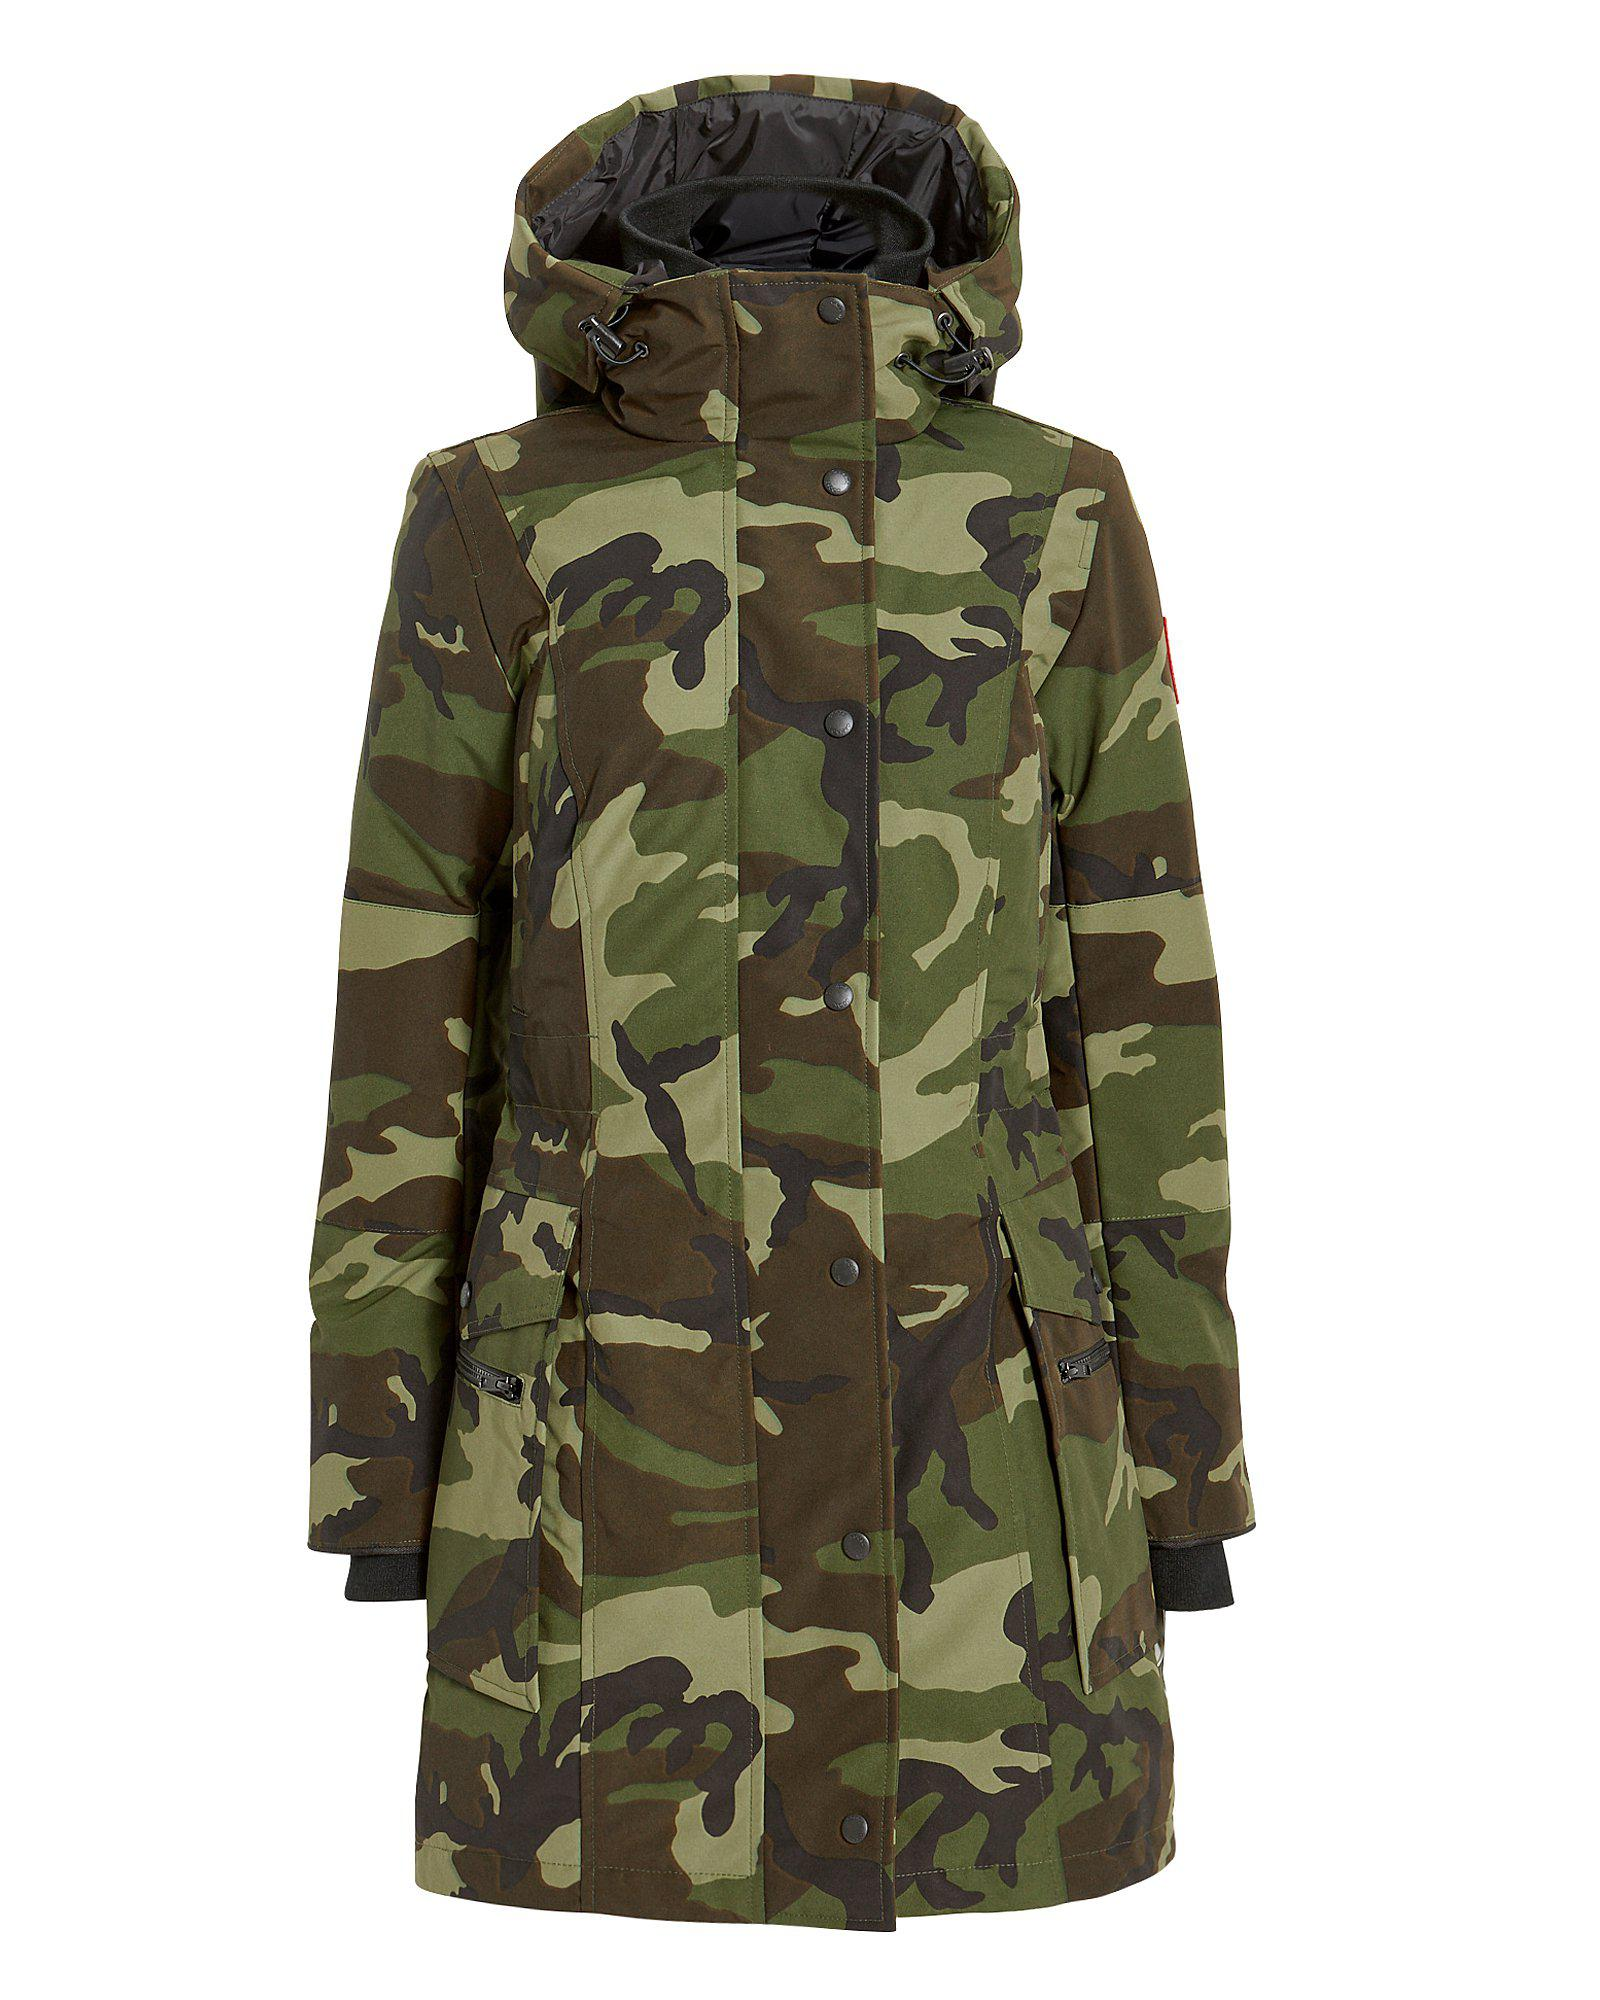 Lyst - Canada Goose Kinley Camouflage Down Parka in Green - Save 6% 956d5ba4f9